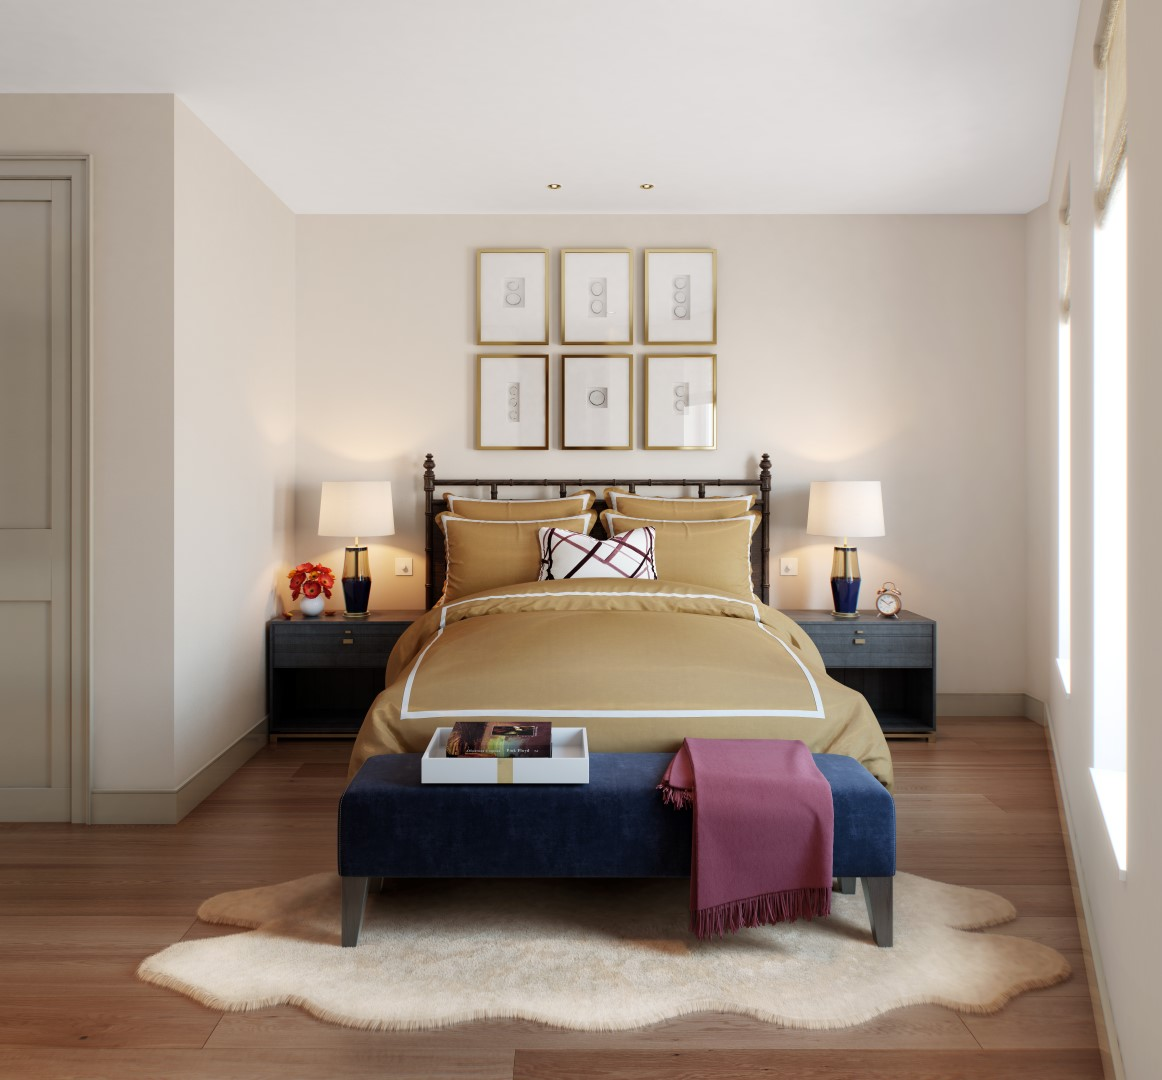 Westminster-Fire-Station-by-Alchemi-Group-and-Far-East-Orchard_Interior_Master-bedroom.jpg